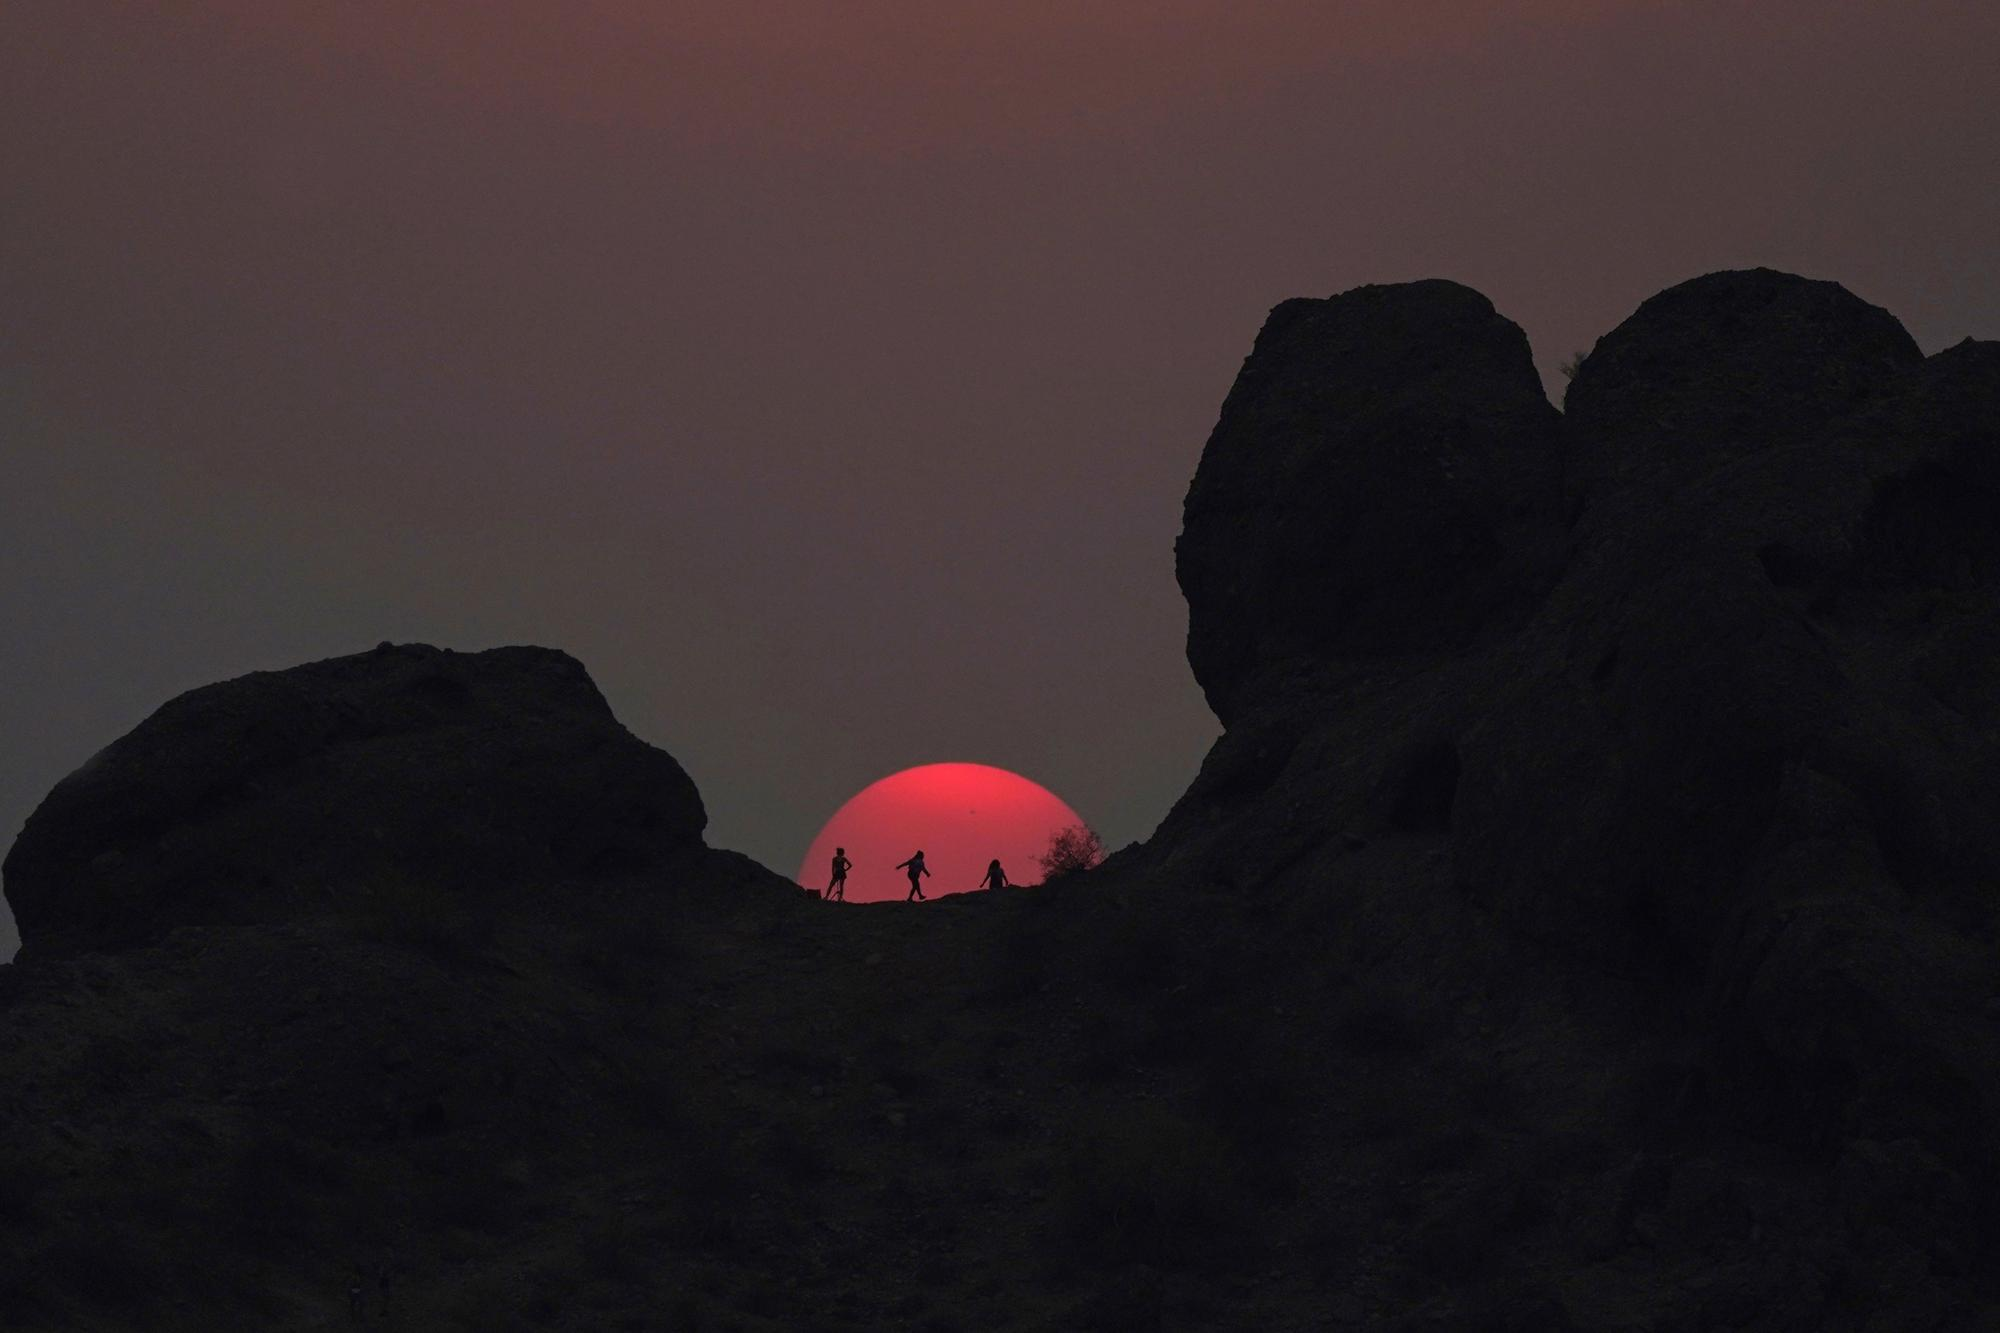 Hikers pause to watch the sunset at Papago Park during a heatwave where temperatures reached 115 degrees Fahrenheit (46 degrees Celsius) in Phoenix on Tuesday, June 15, 2021. (AP Photo/Ross D. Franklin)